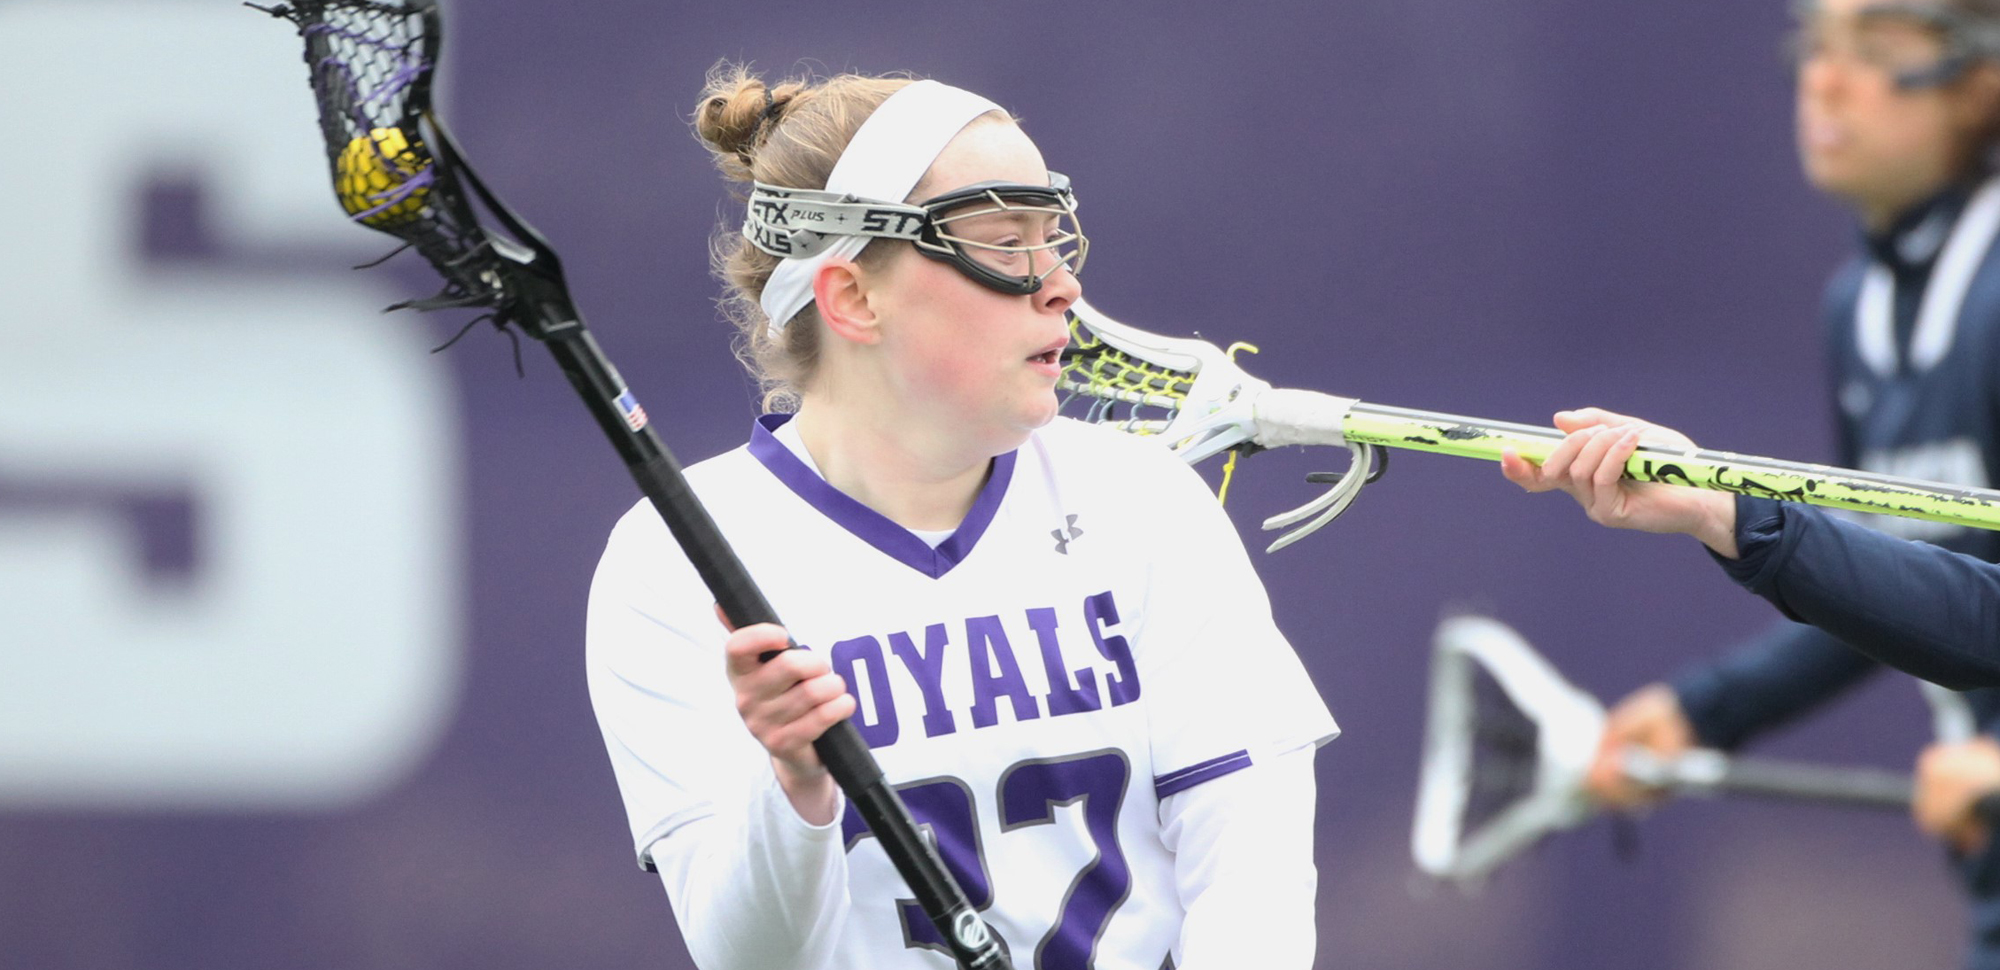 Senior Christine Olert scored a game-high five goals to lead the Royals to a thrilling 12-11 win at Drew on Wednesday afternoon to remain unbeaten in the Landmark Conference. © Photo by Timothy R. Dougherty / doubleeaglephotography.com